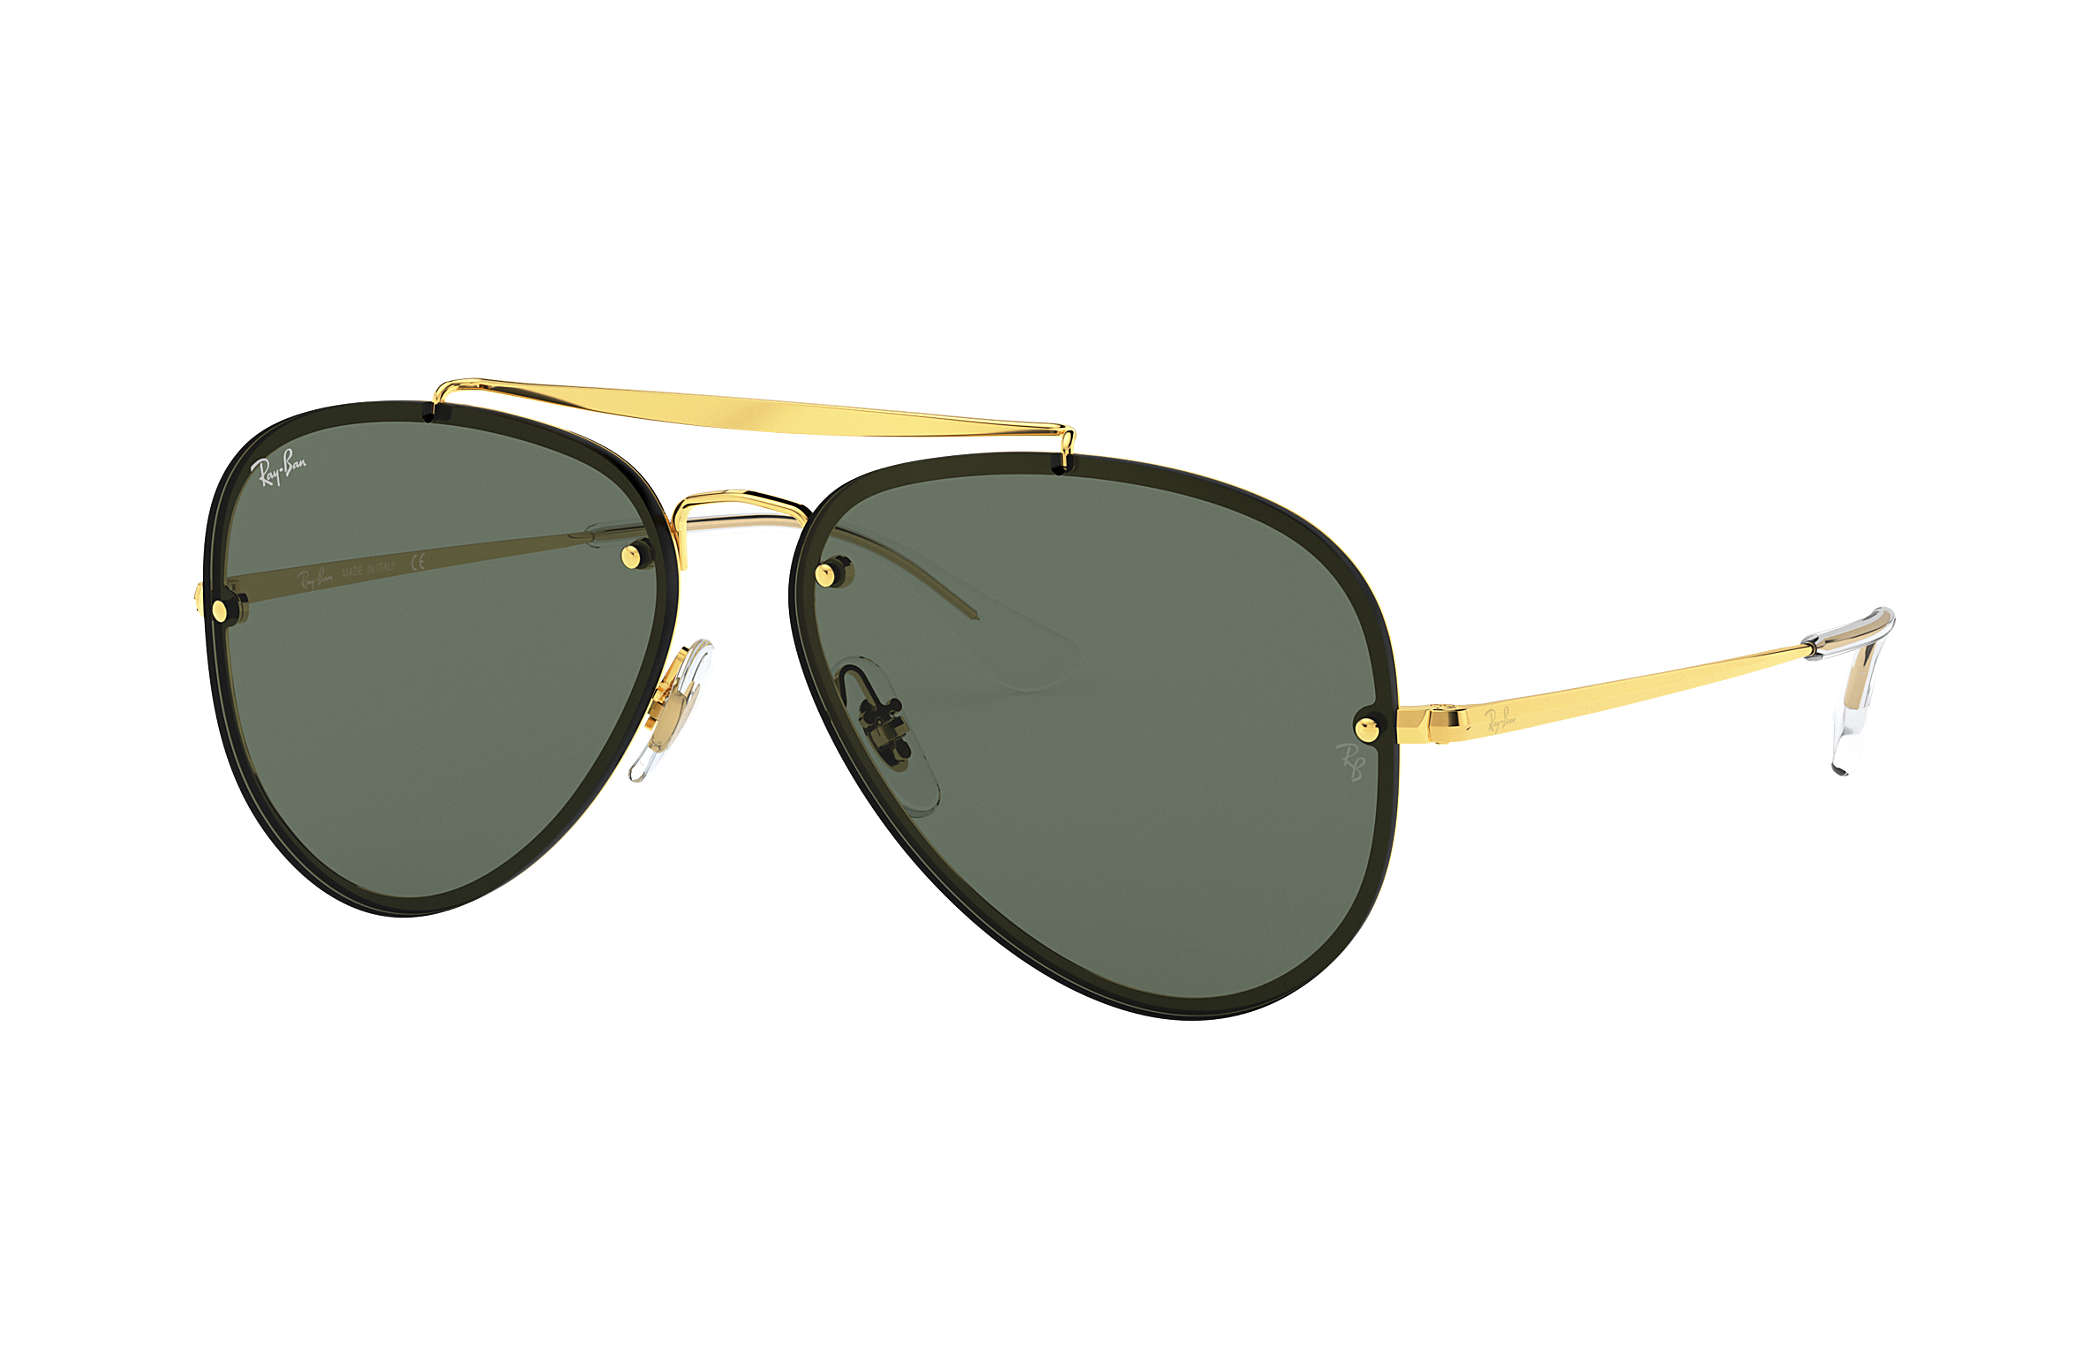 684d8c741b6e6 Ray-Ban Blaze Aviator RB3584N Gold - Steel - Green Lenses ...